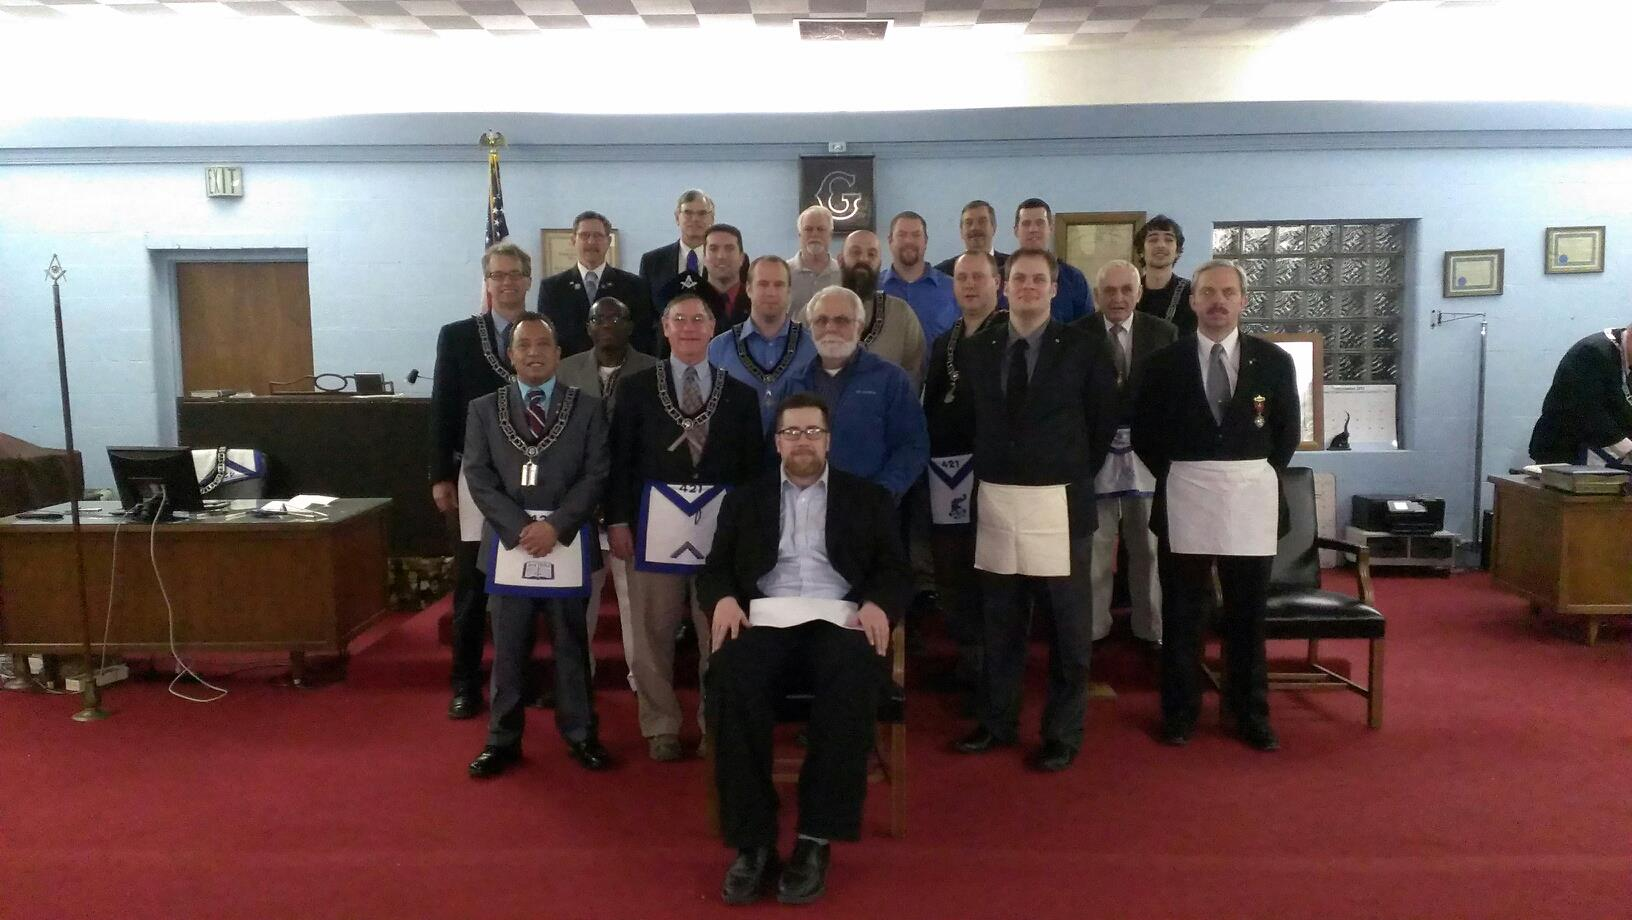 New Master Mason tonight, plus Brother Matt wearing an apron